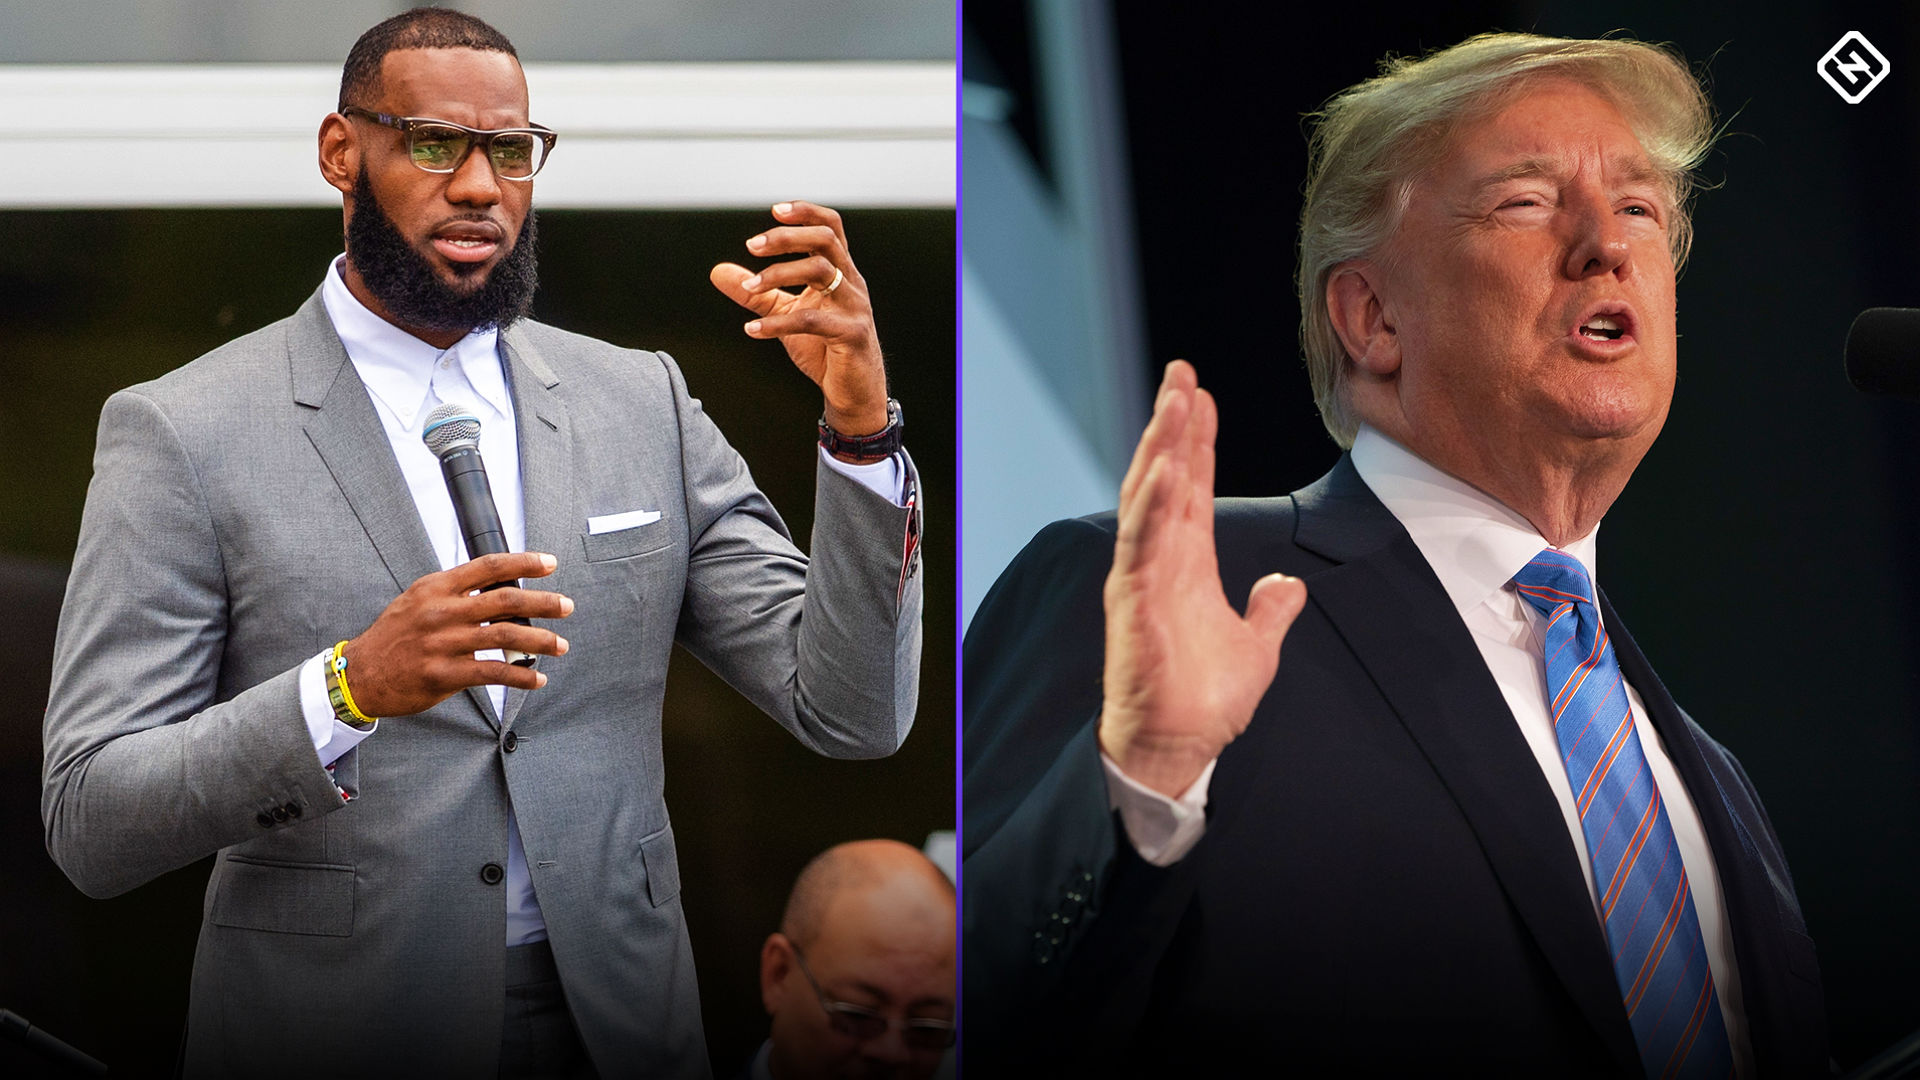 Trump launches attack on LeBron James hours before rally in Ohio